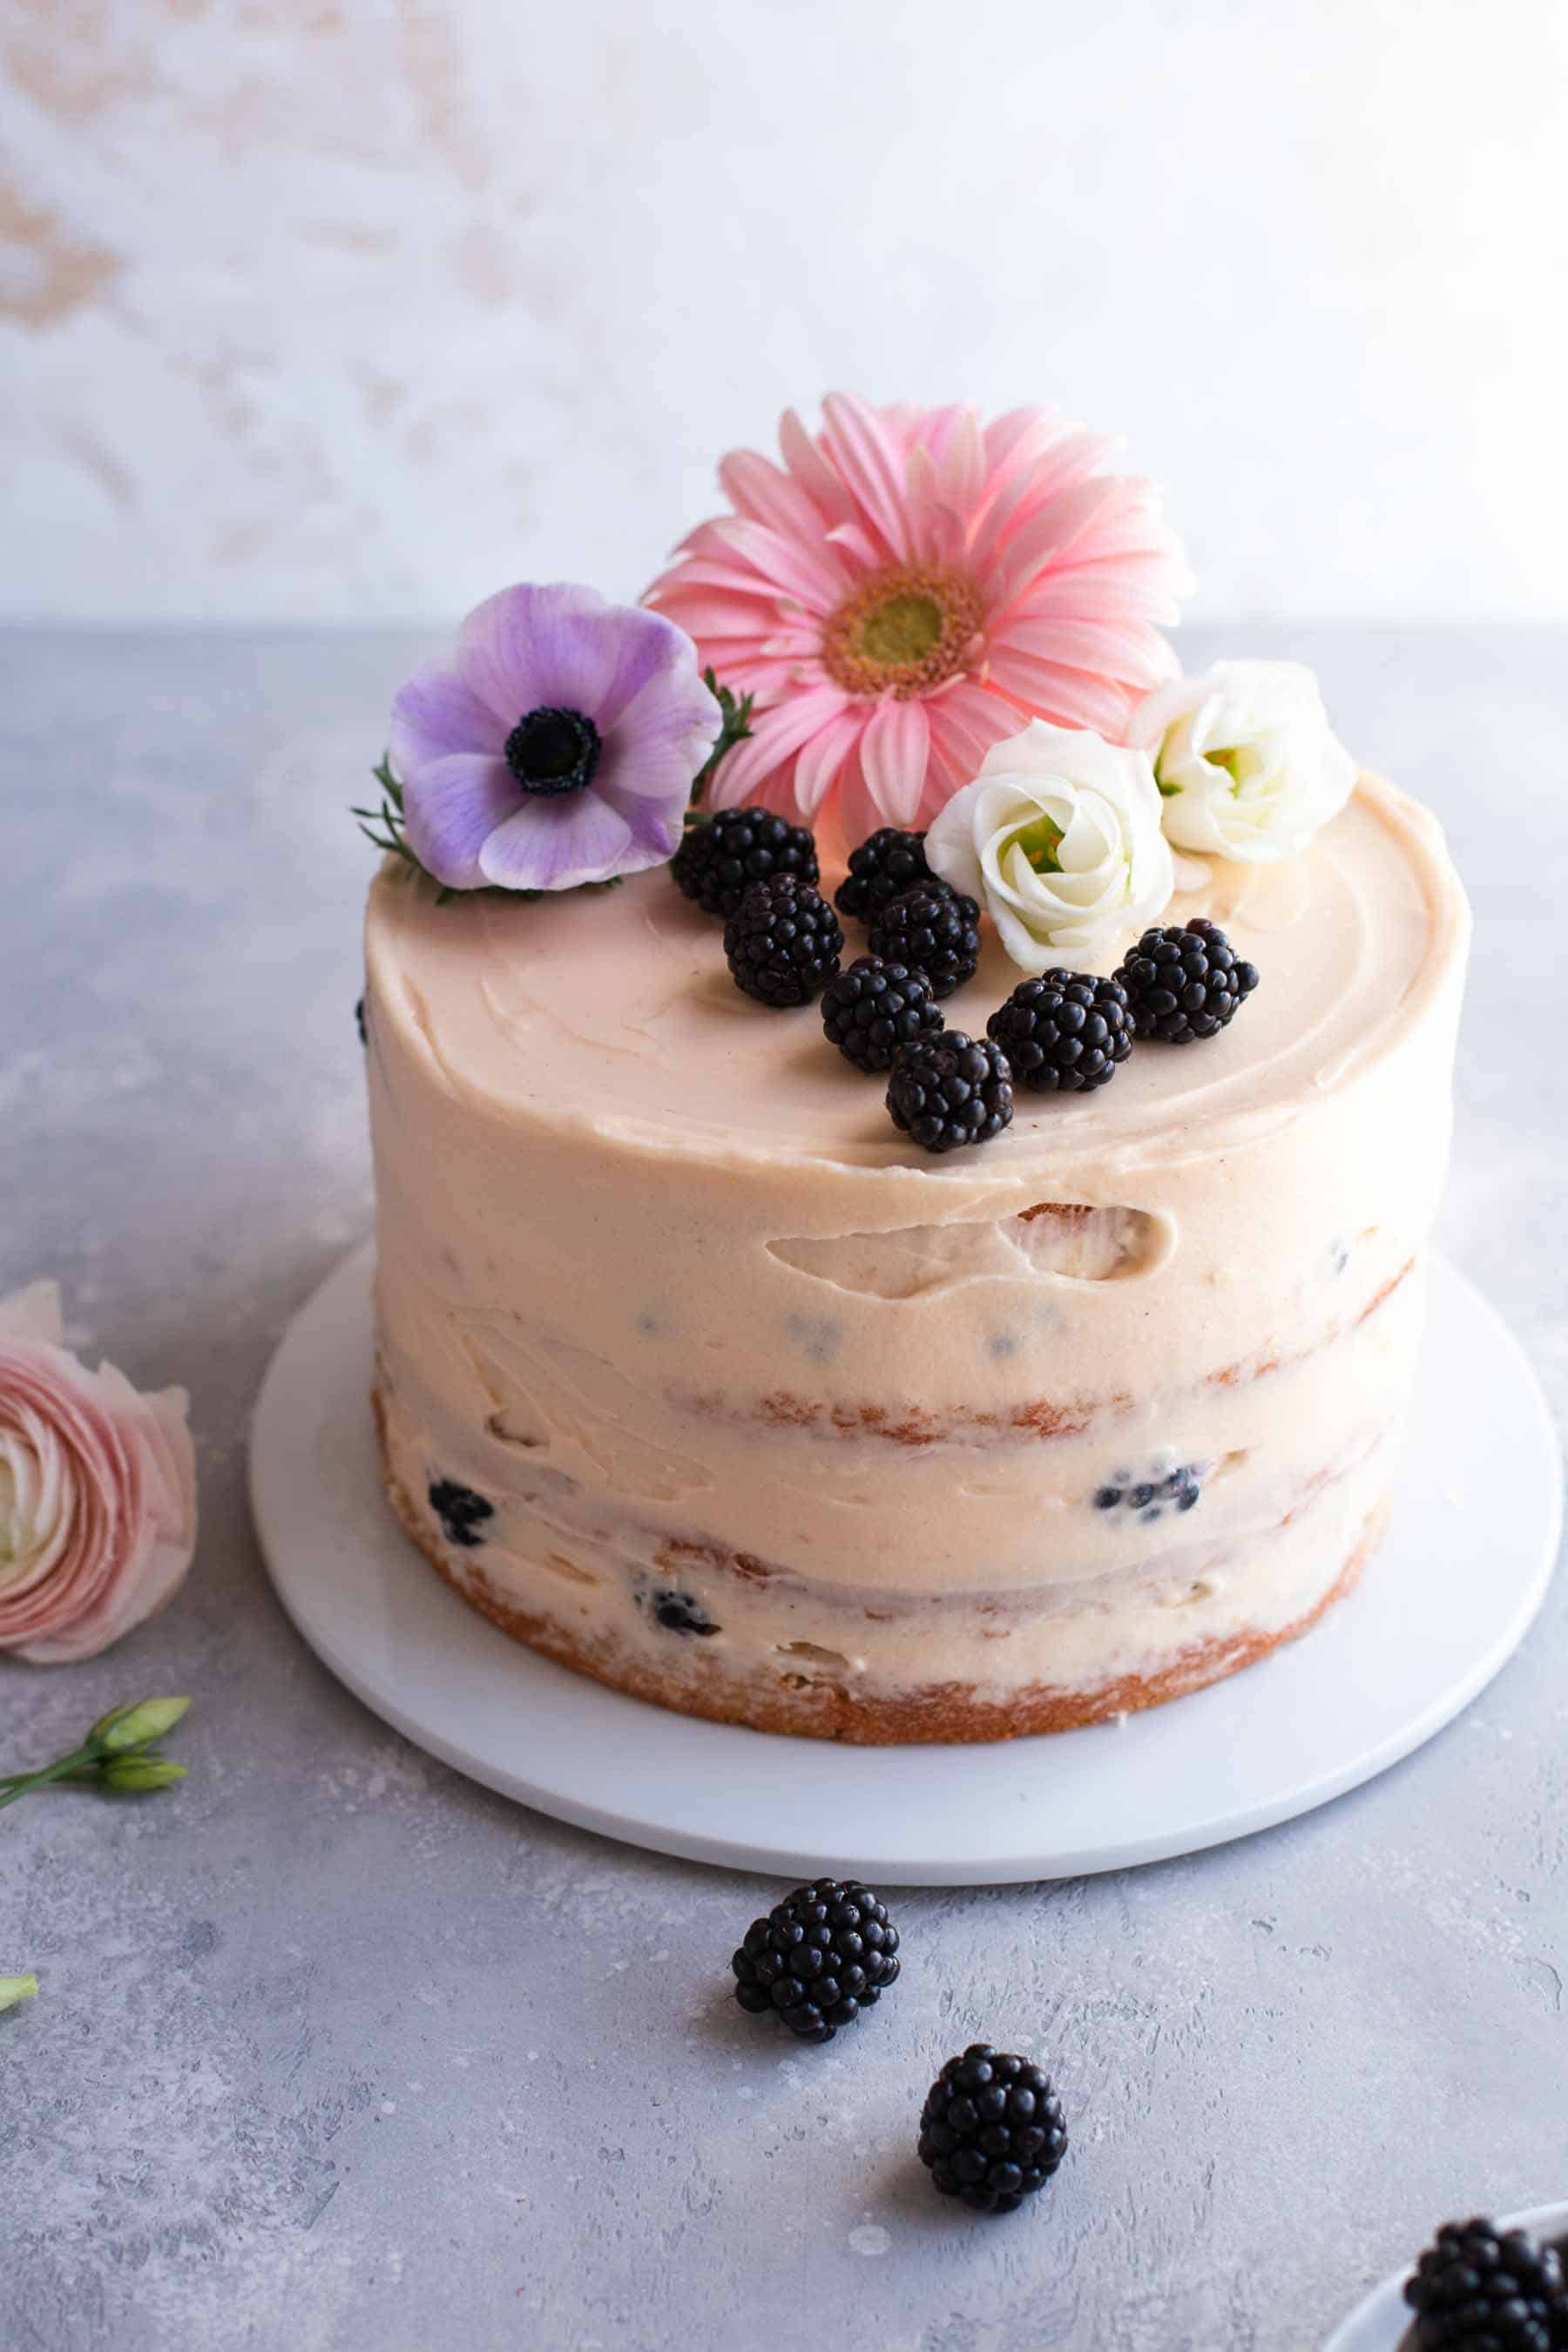 Decorated blackberry cake with flowers on top